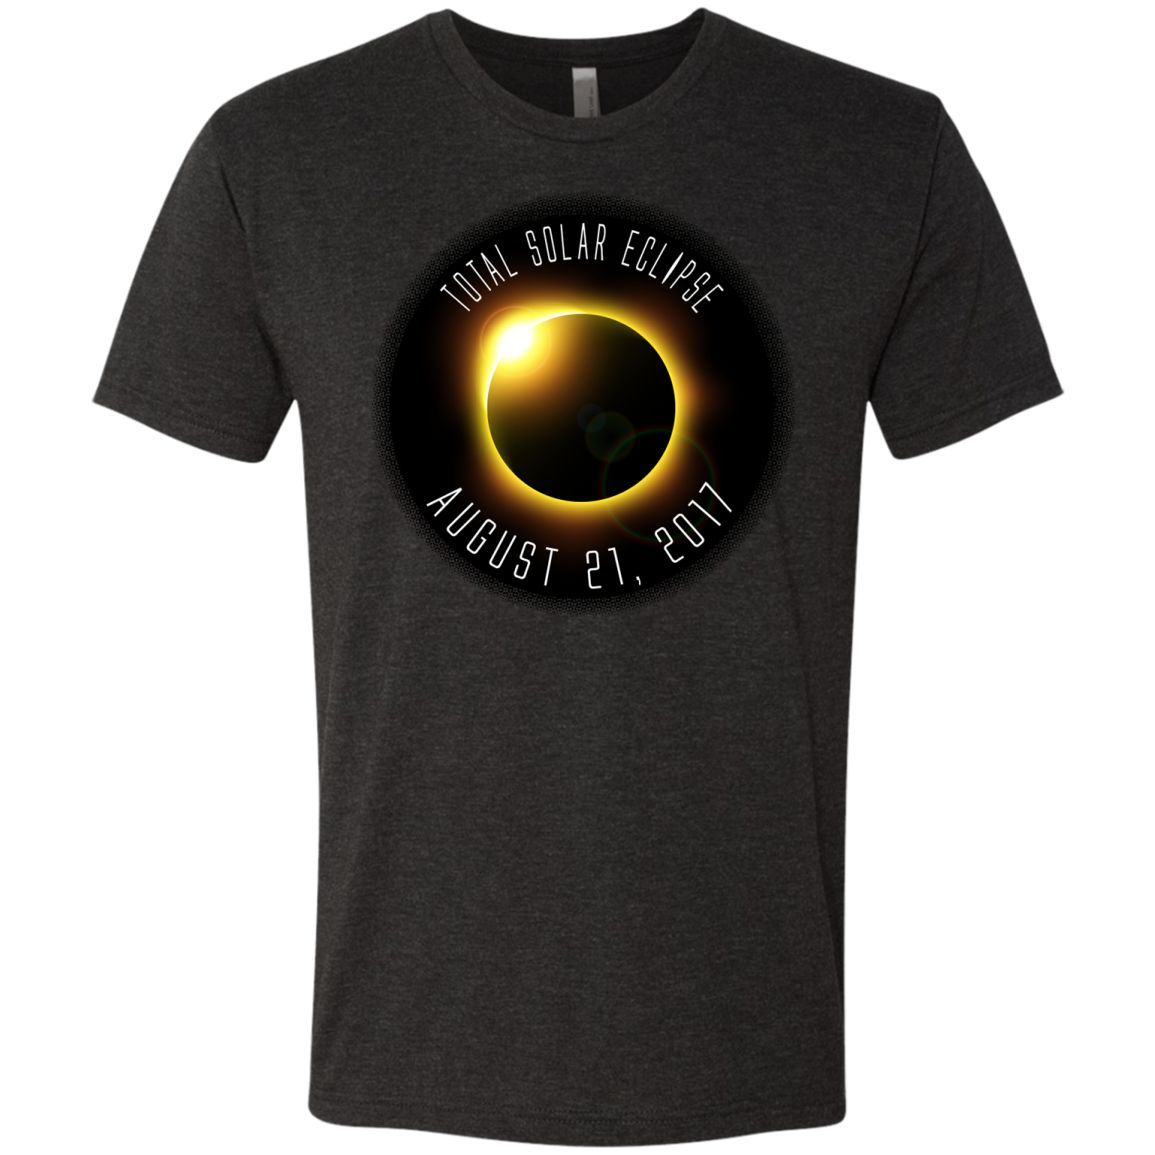 Total Solar Eclipse August 21 2017 Shirts for Men and Women